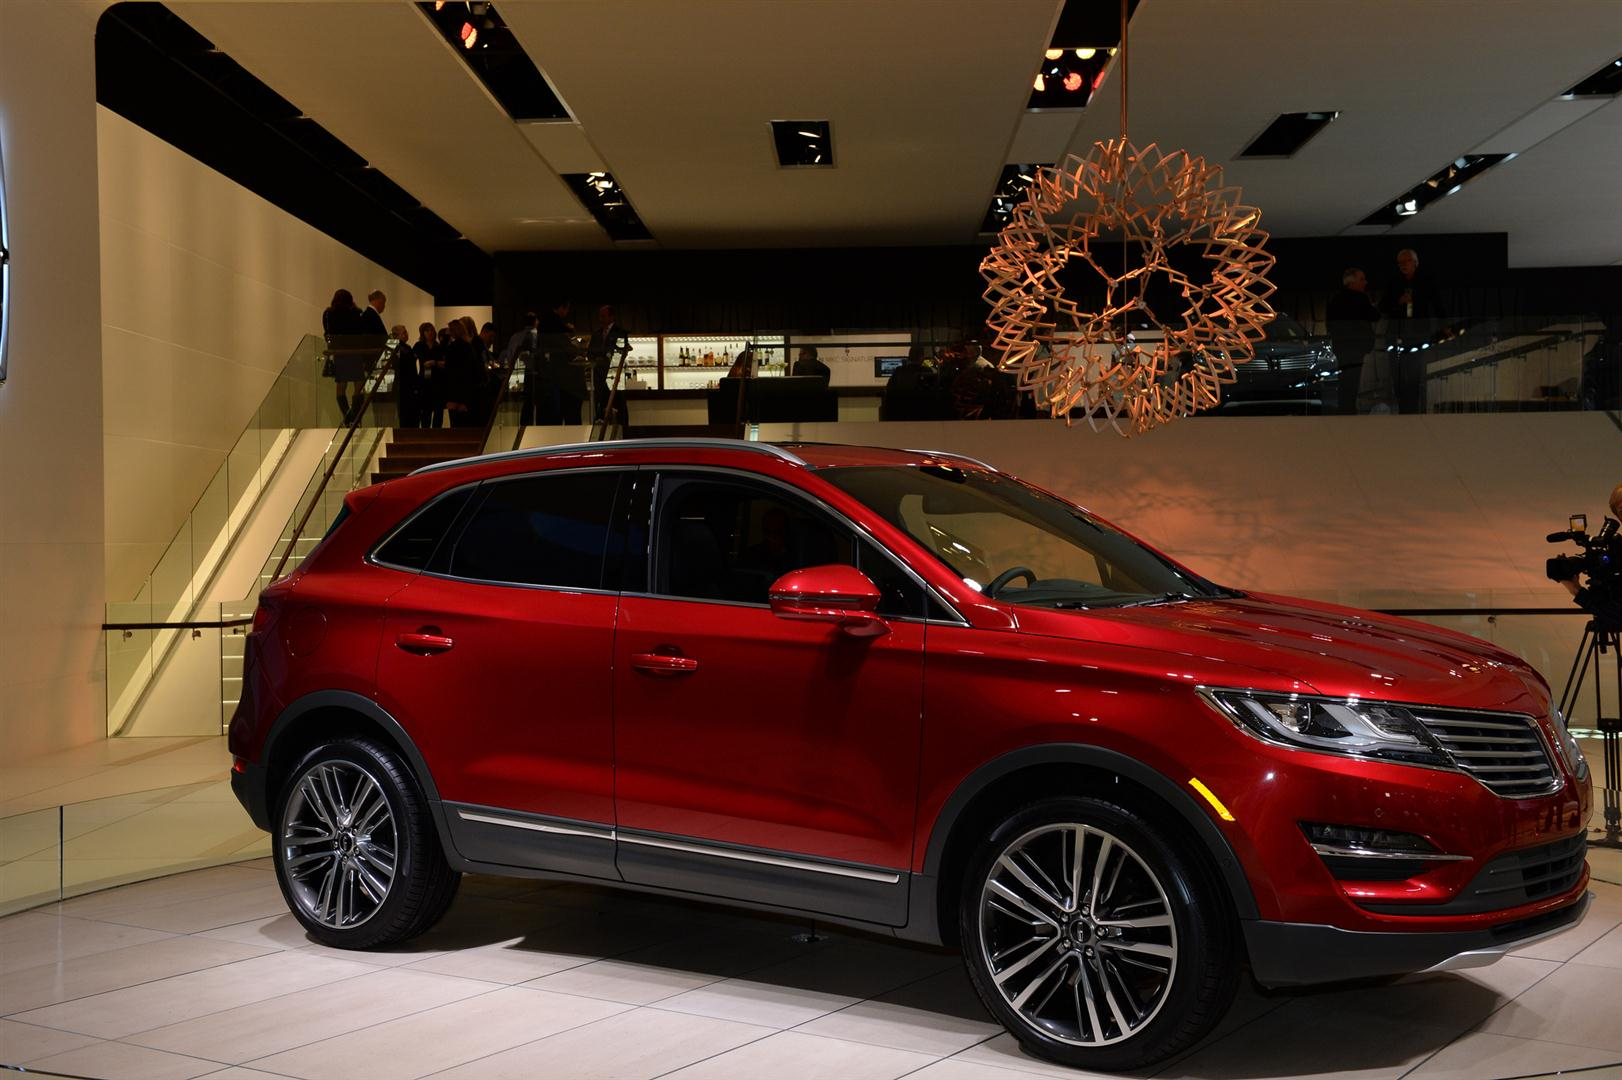 2018 lincoln mkc reserve, engine, red color